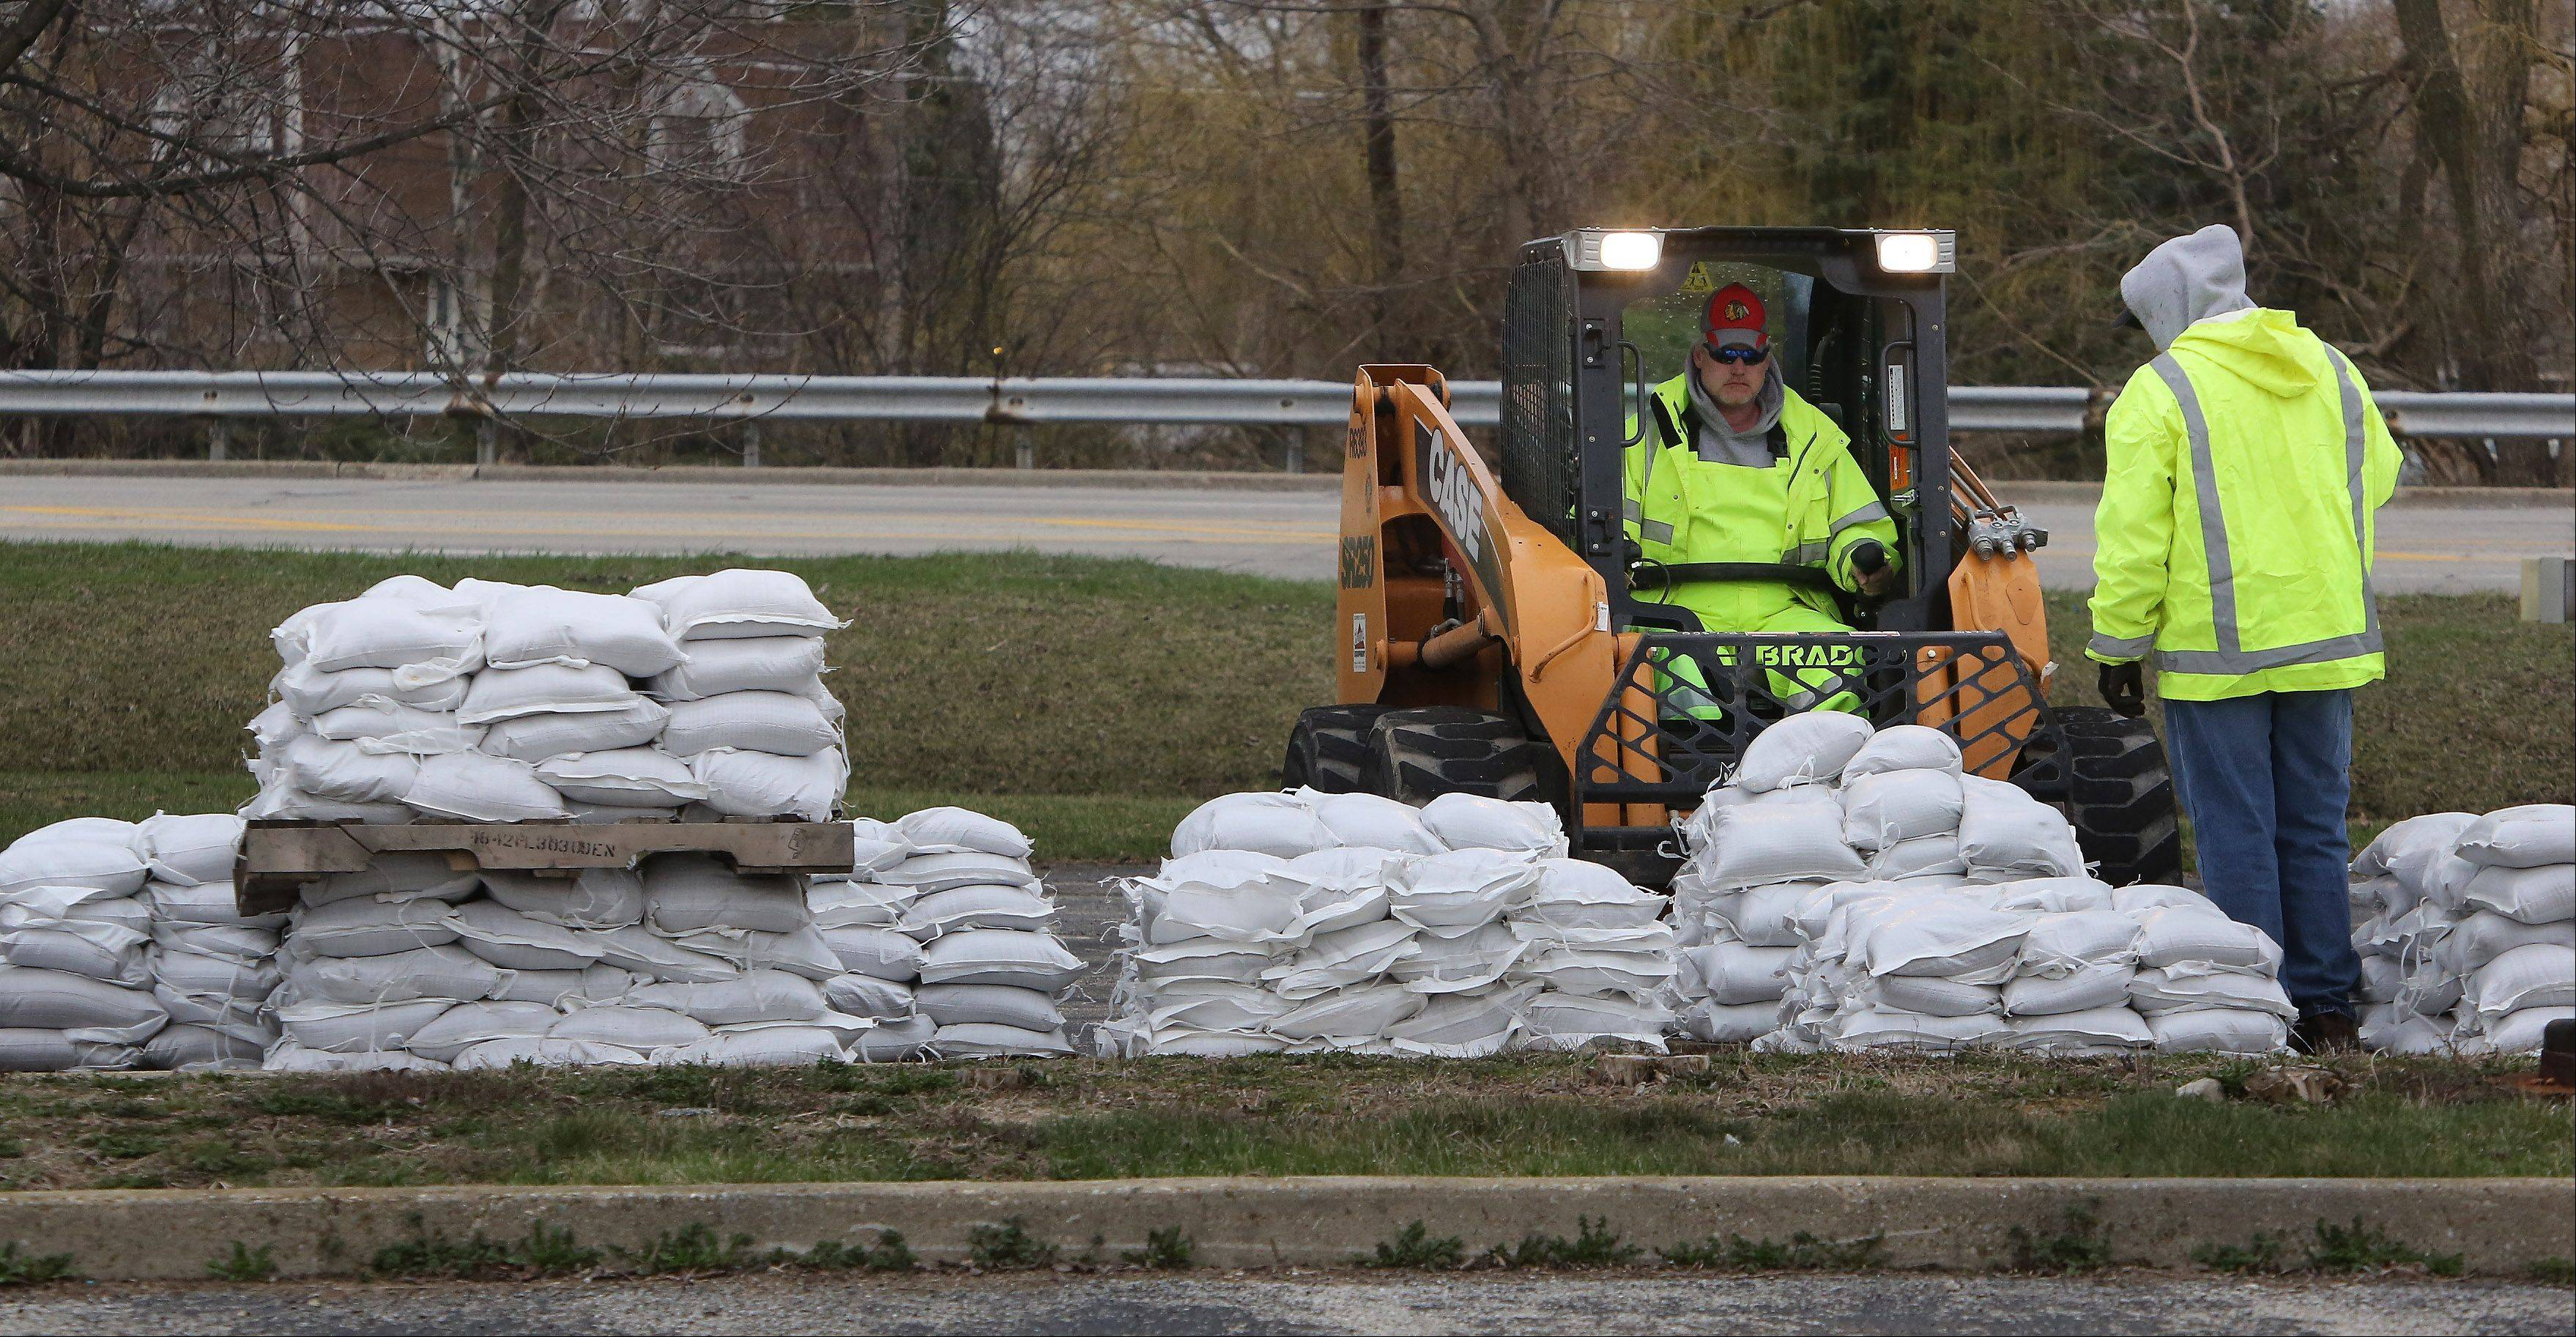 Gurnee Public Works employees Brian Walsh, left, and Dave Zirbel move pallets of sandbags Wednesday to help protect area residents and businesses from any Des Plaines River flooding.